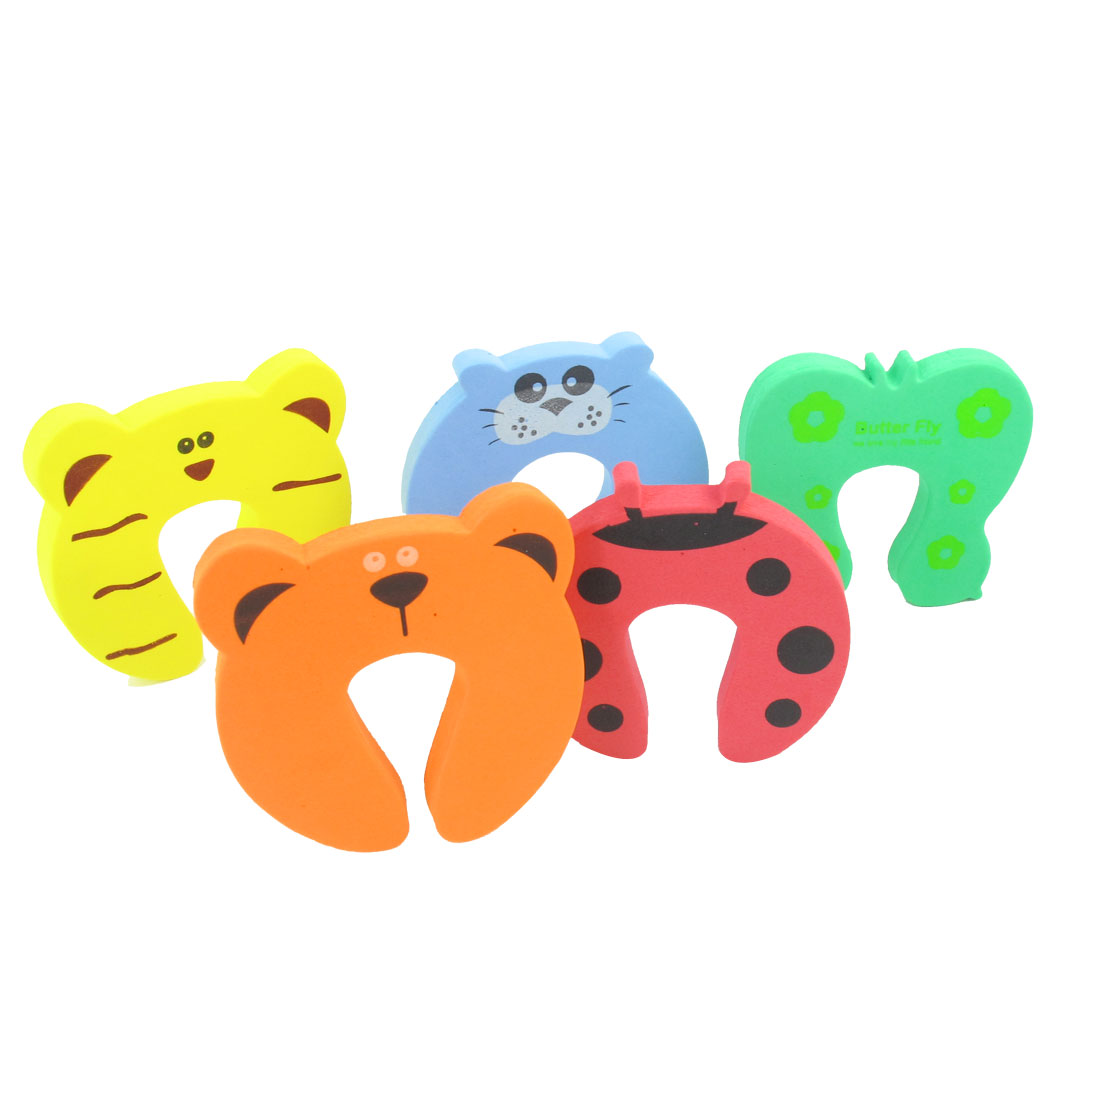 5 Pcs Cartoon Tiger Cat Ladybug Design Baby Safety Foam Door Cushion Stopper